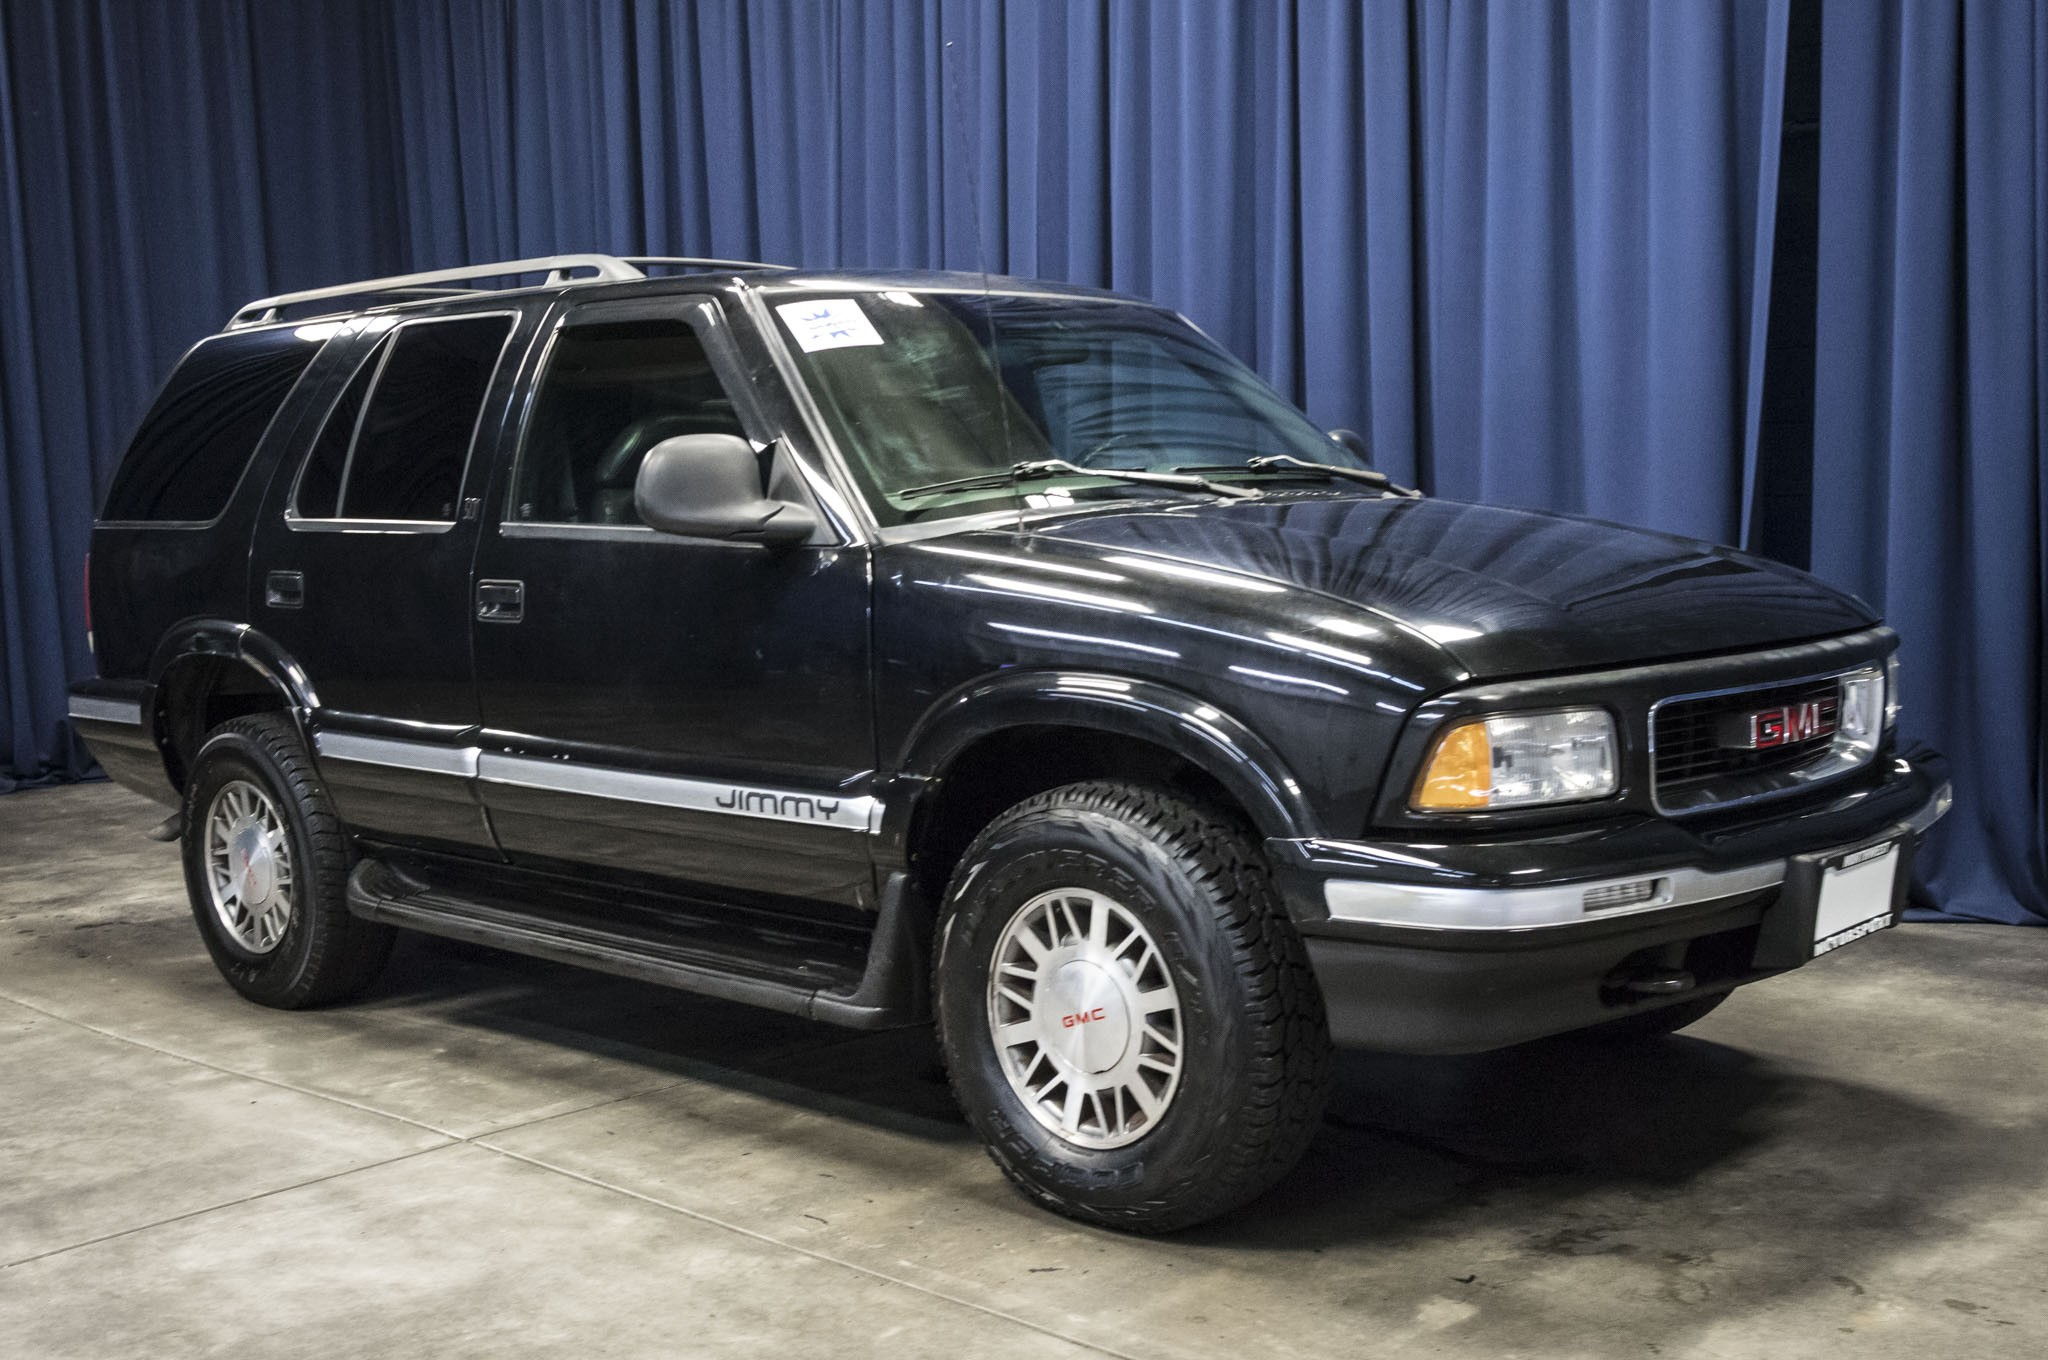 envoy sale item auction size gmc suv new sold window slt full october in for jimmy